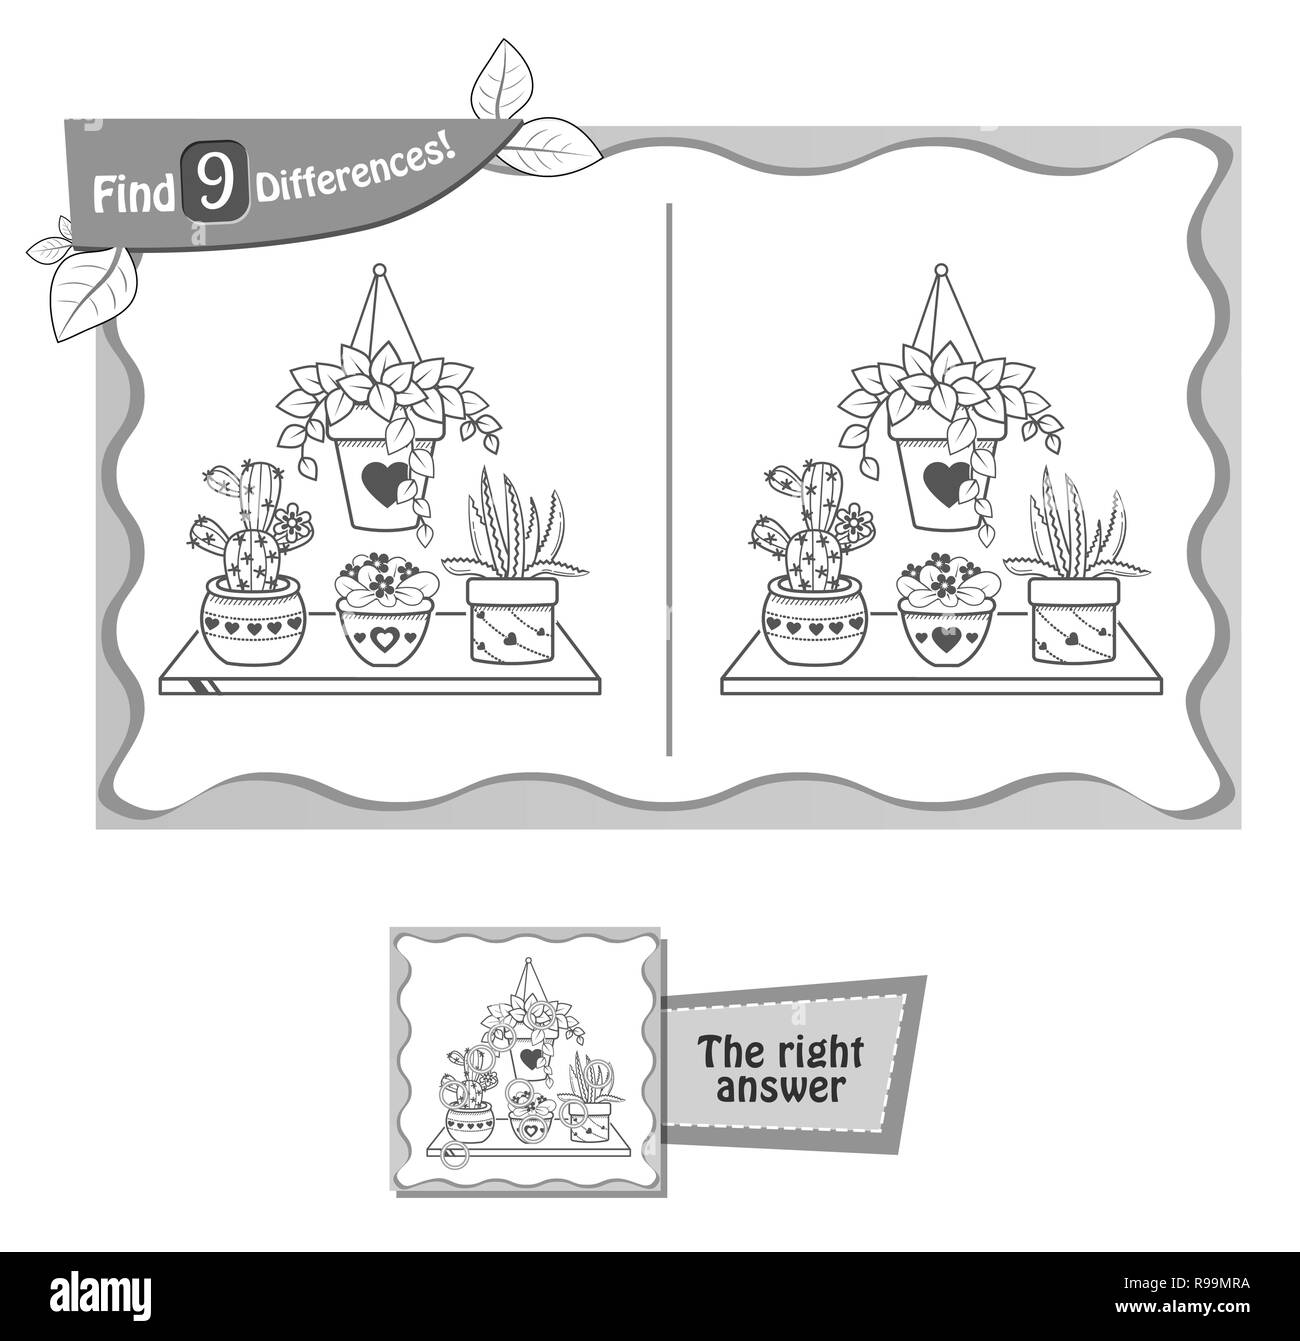 visual game for children and adults. Task to find 9 differences in the illustration on the school board. black and white vector illustration - Stock Vector